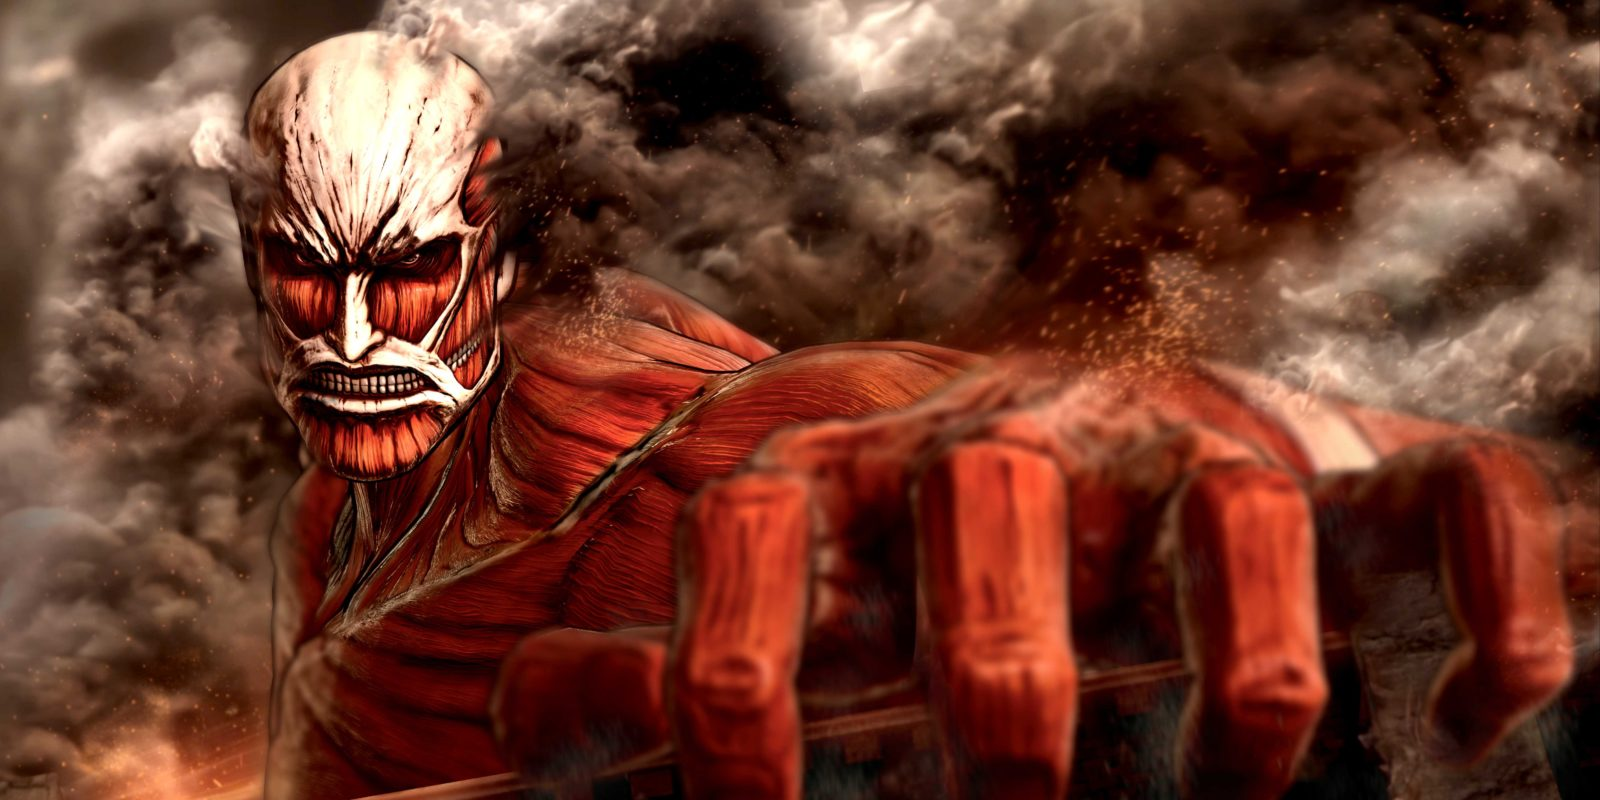 Attack On Titan Chapter 138 Predictions, Release Date, Time, Spoilers And Where To Buy Or Read ...